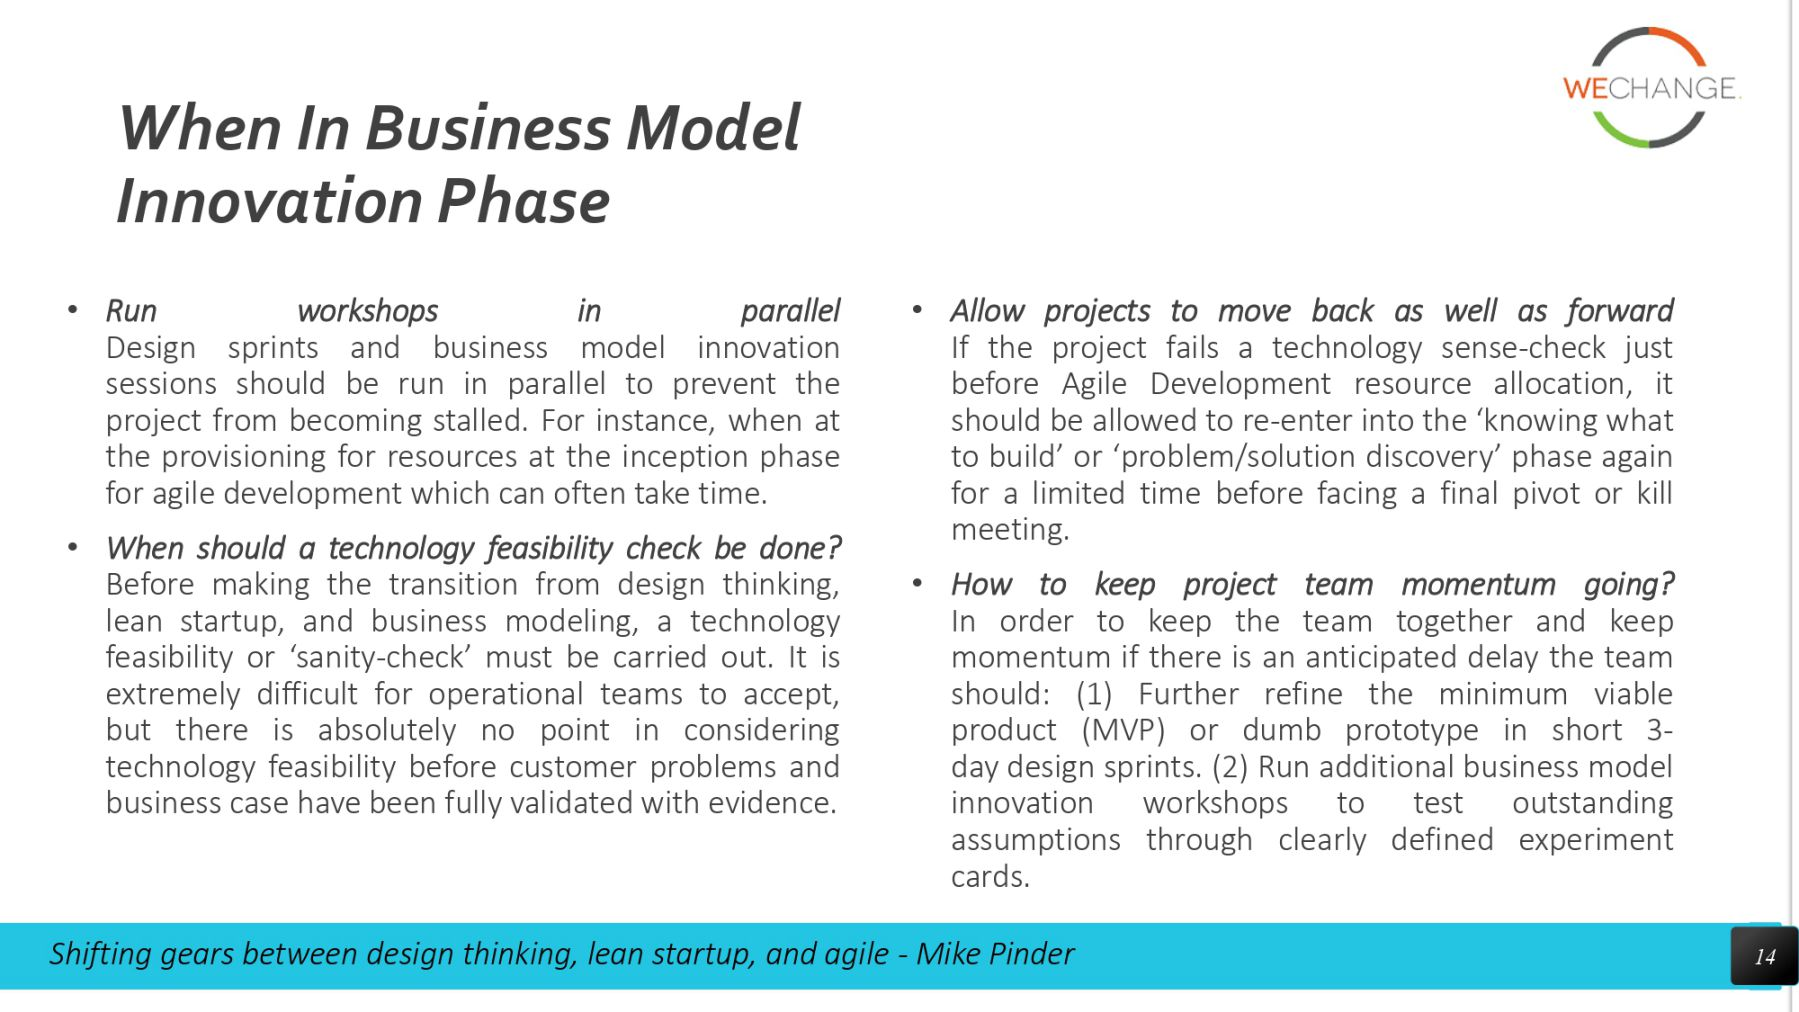 Design thinking lean startup and agile page 0013 compressed Design thinking lean startup and agile